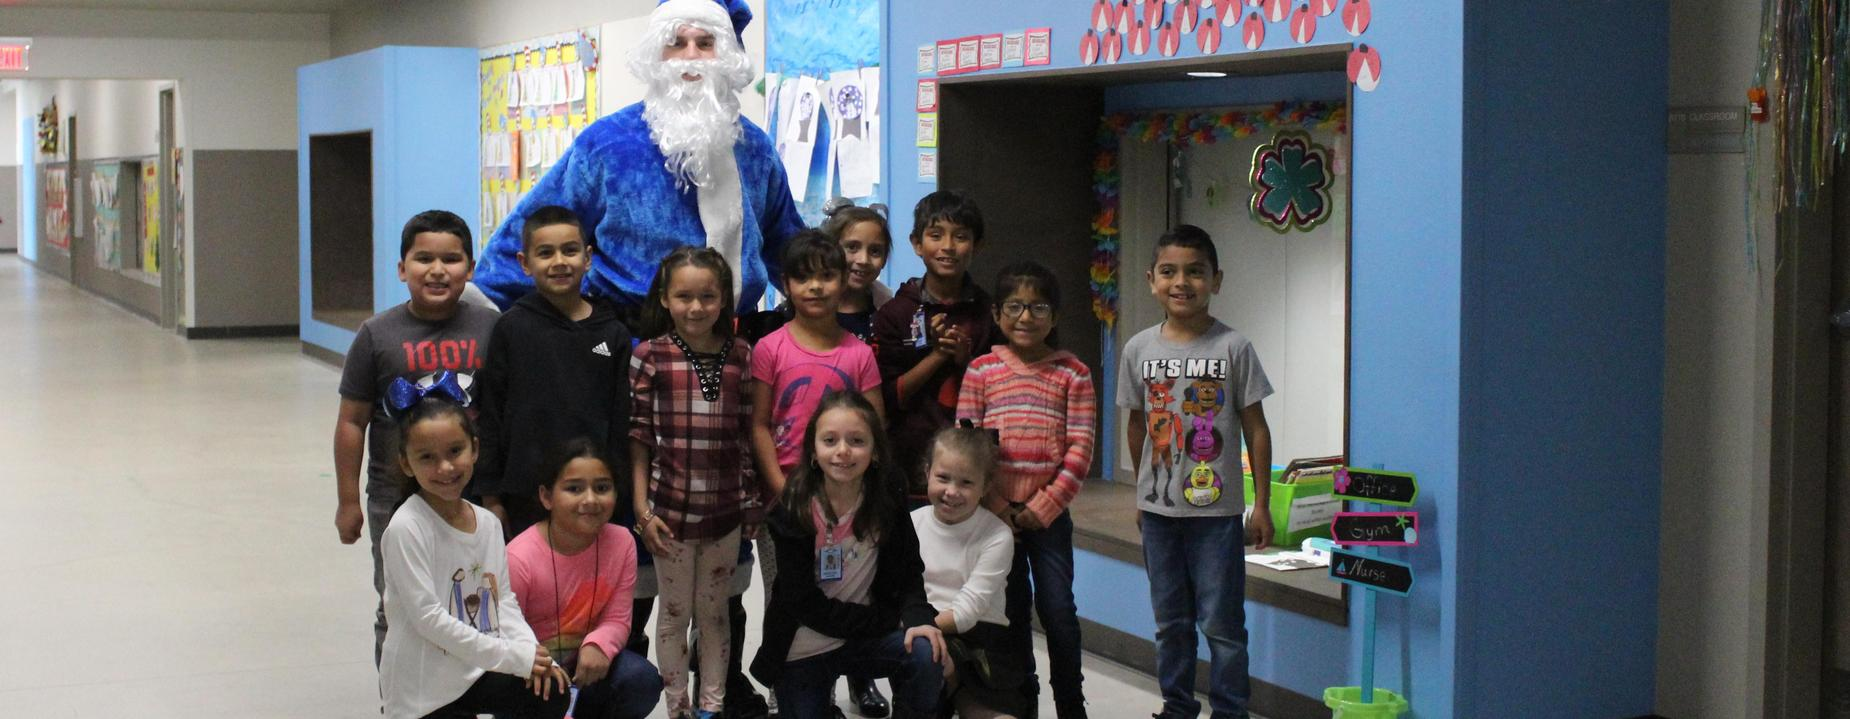 Excited Elementary Students with Blue Santa